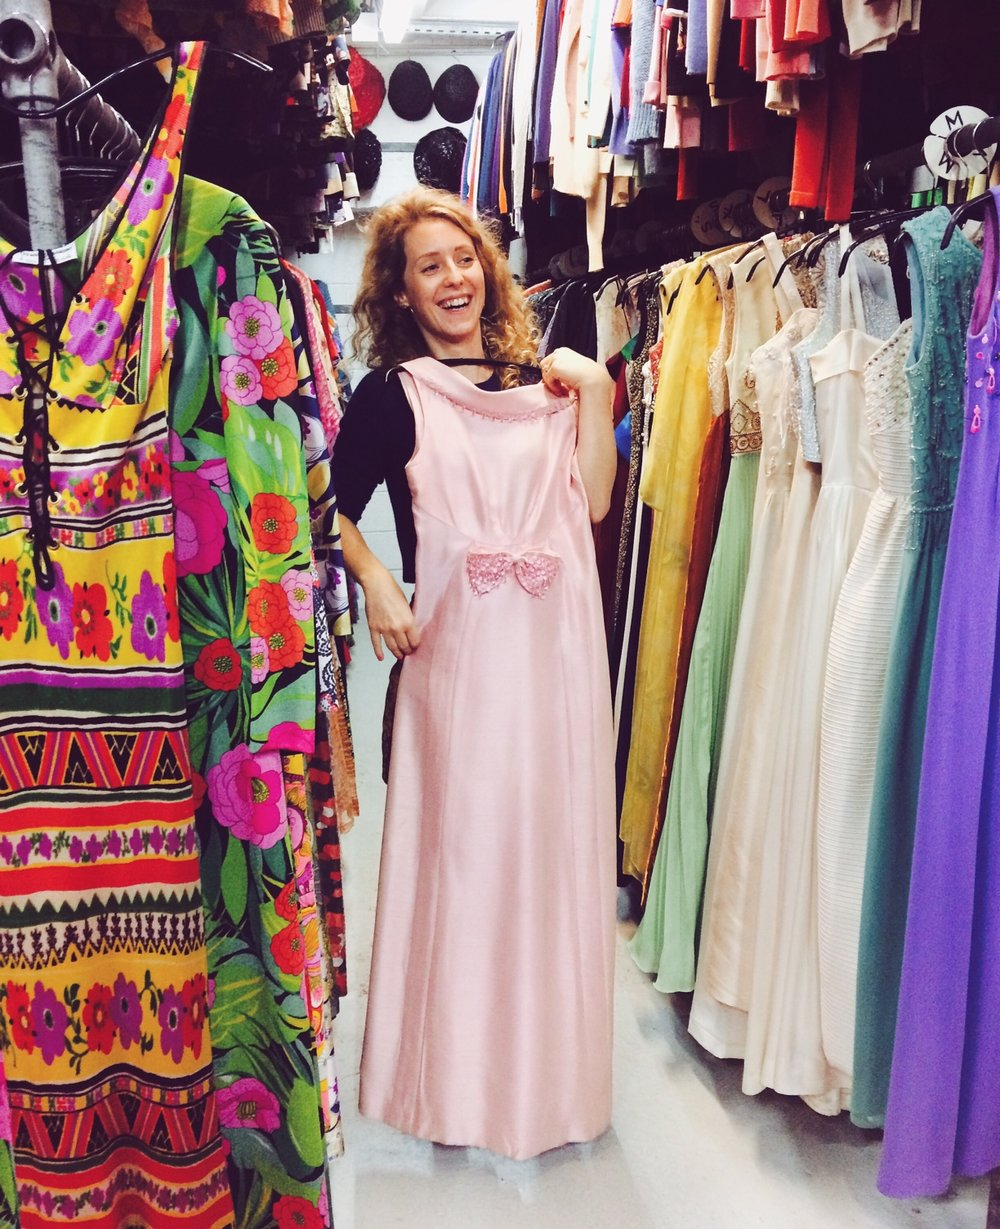 "Oh Hello ! It's me at a rental costume shop in Paris ""Les Mauvais Garçons"" while sourcing costumes for a show... that had nothing to do with the 1960s lol ! But you know... I got caught up by this alley ;)"